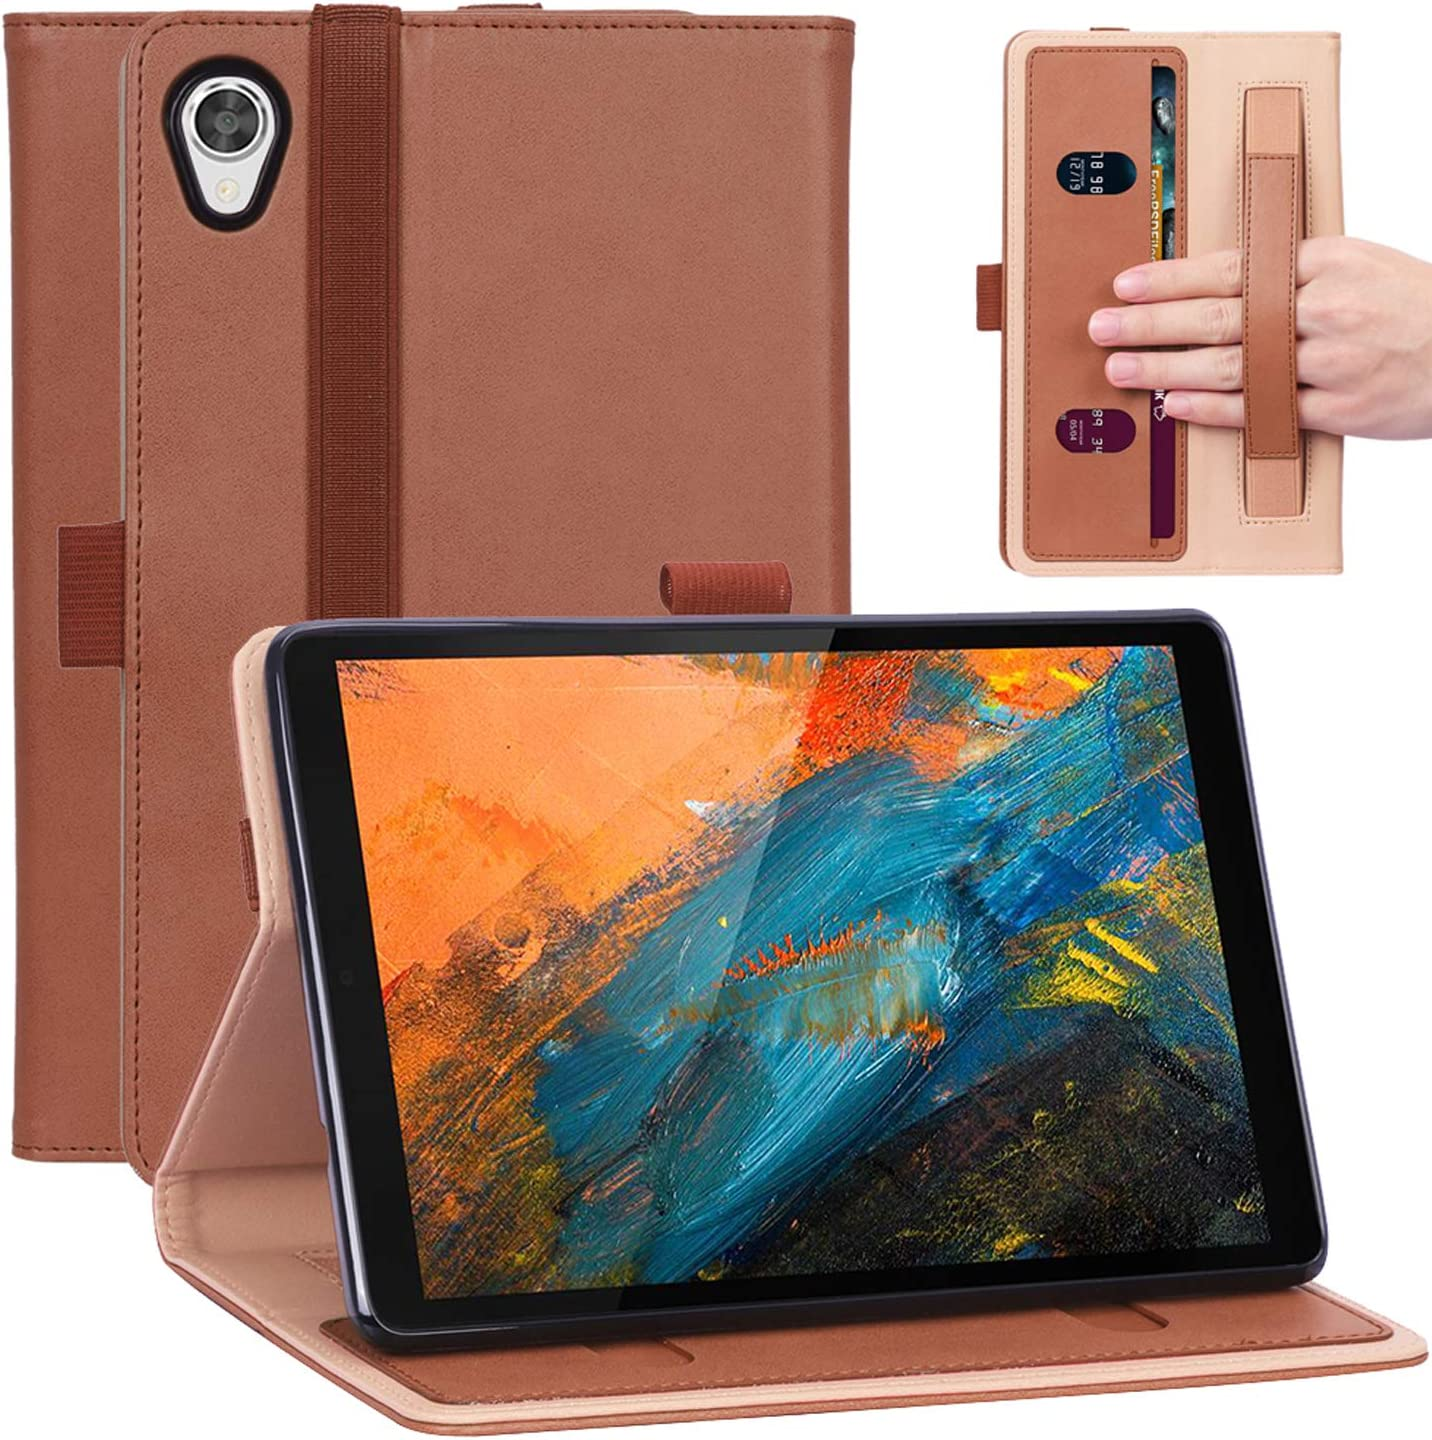 Timewall Multi-Angle Stand Case for Lenovo Tab M8 HD FHD 8 Inch Tablet 2019 TB-8705F/N TB-8505F/X/I, with Hand Strap Card Cash Slot Elastic Band Pen Holder PU Leather Smart Full Cover Brown